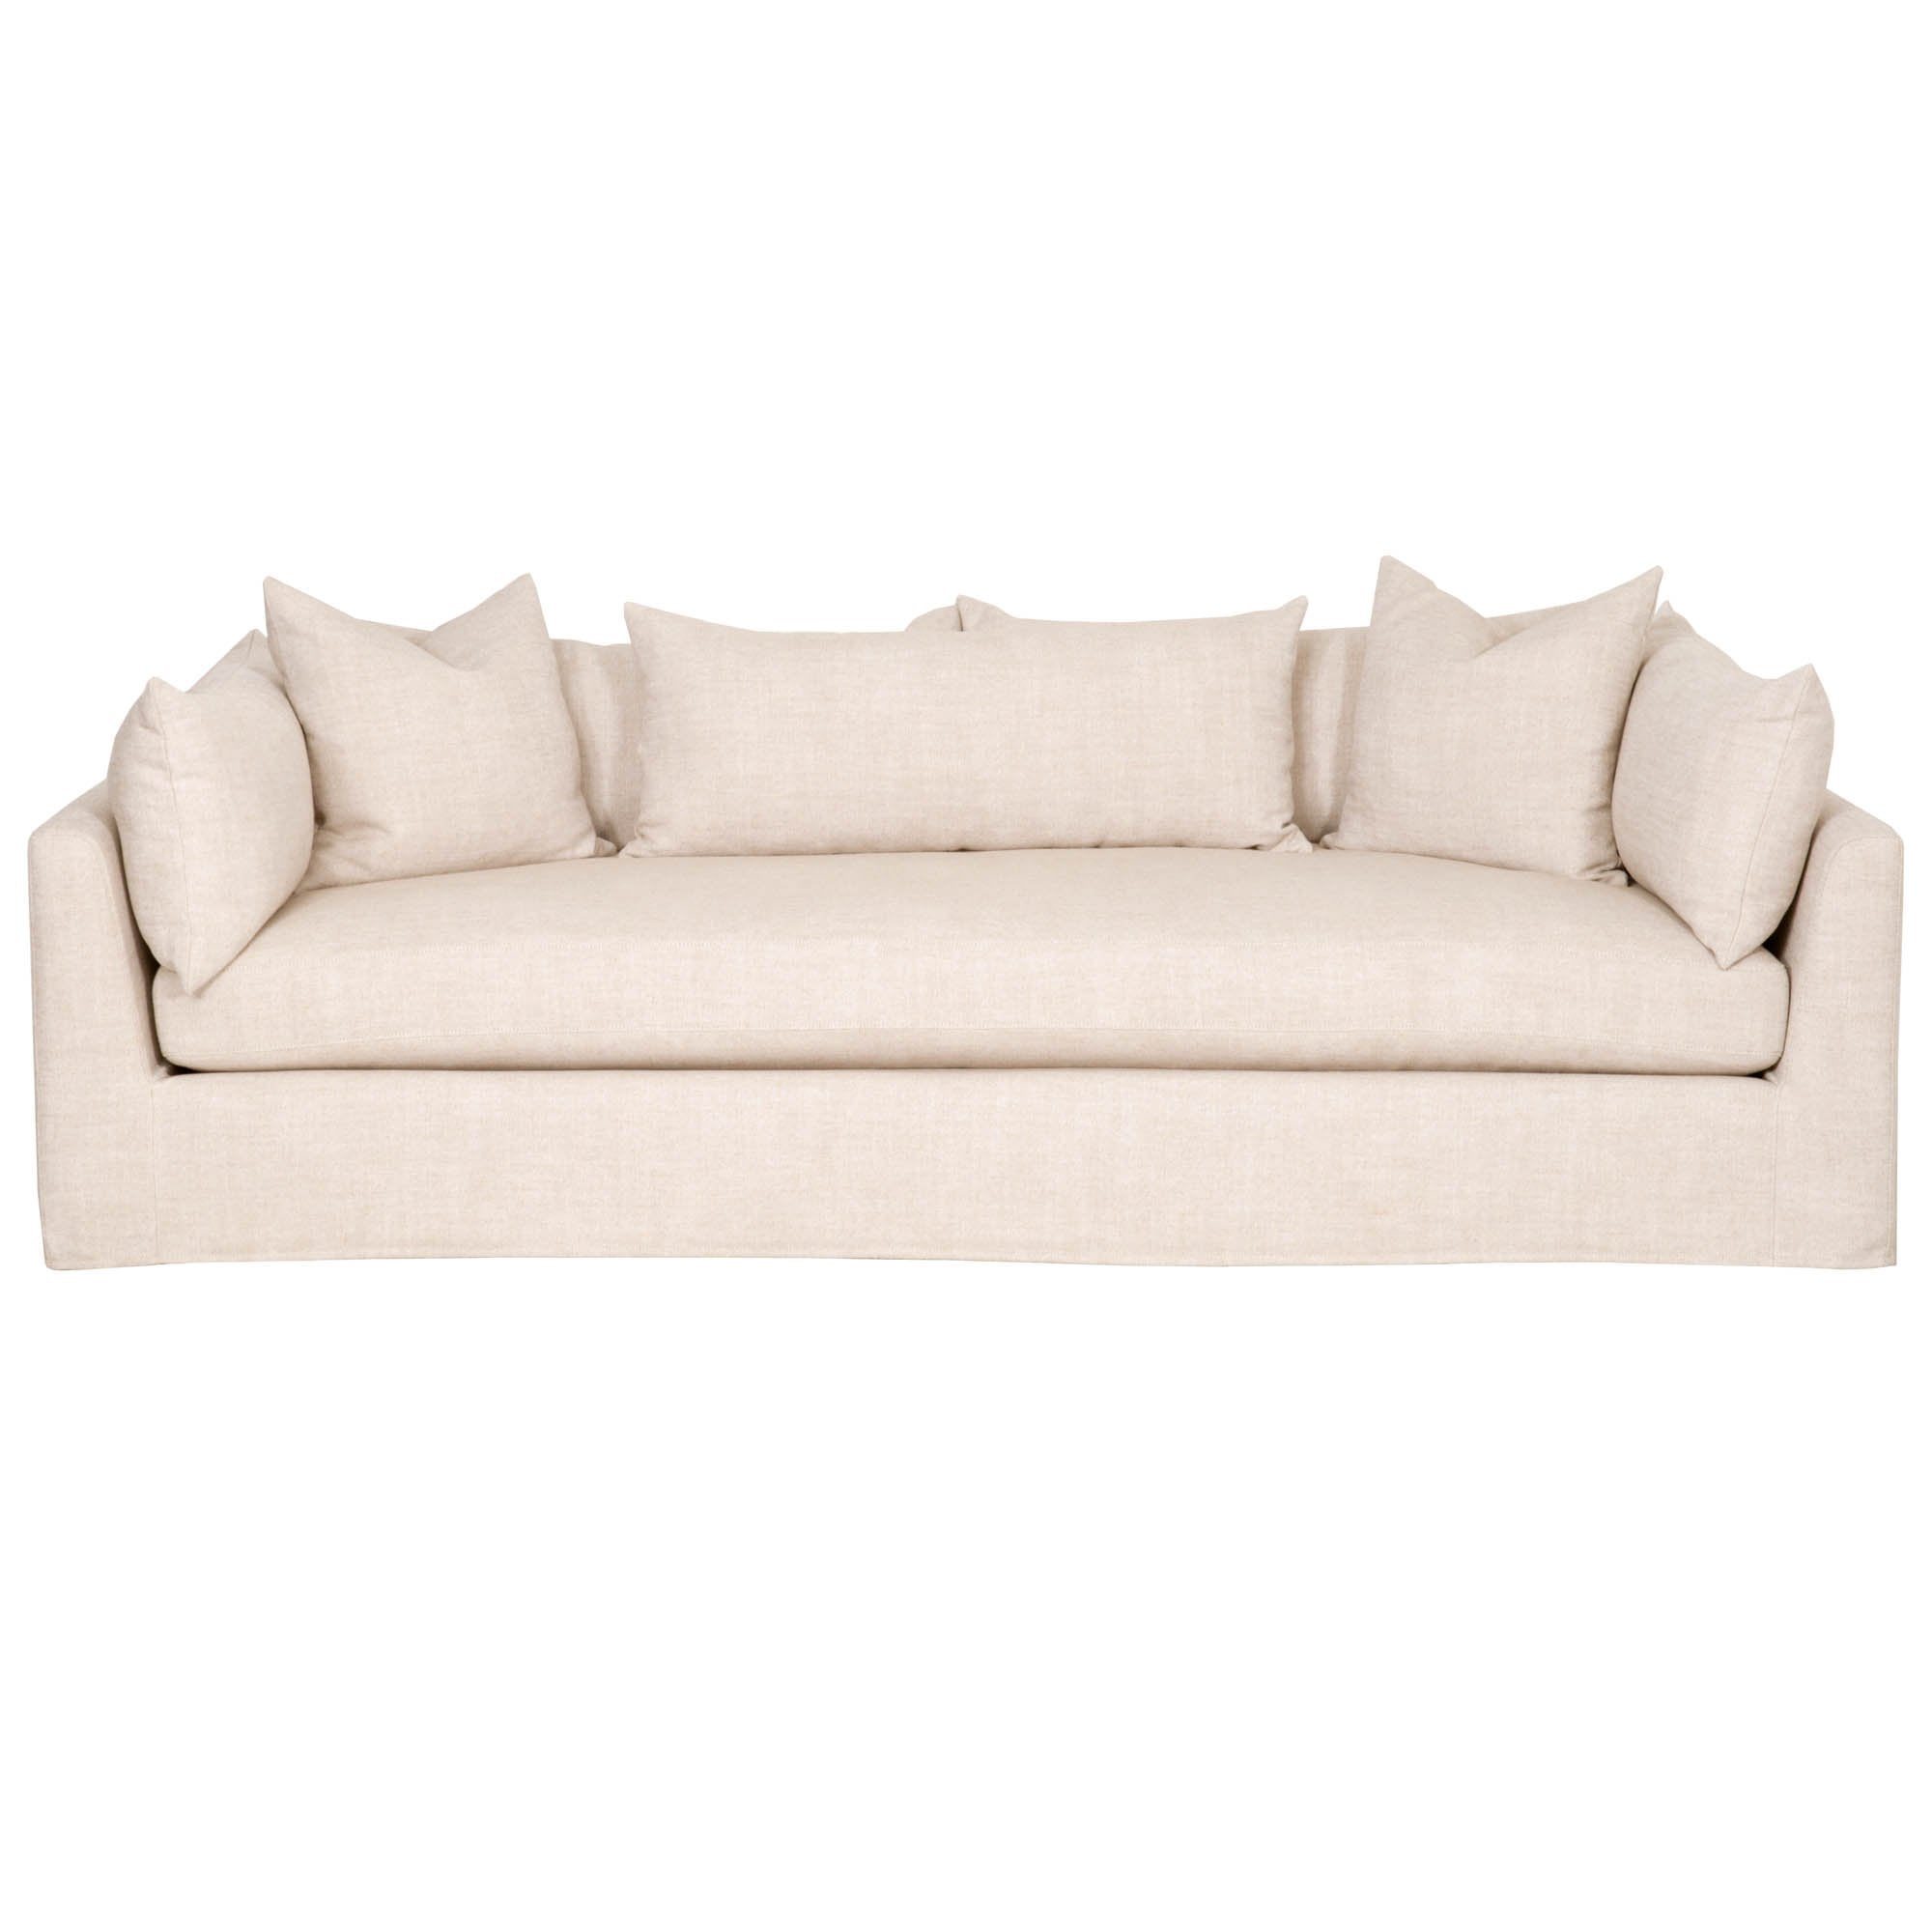 "Haven 95"" Lounge Slipcover Sofa in Bisque Fabric"